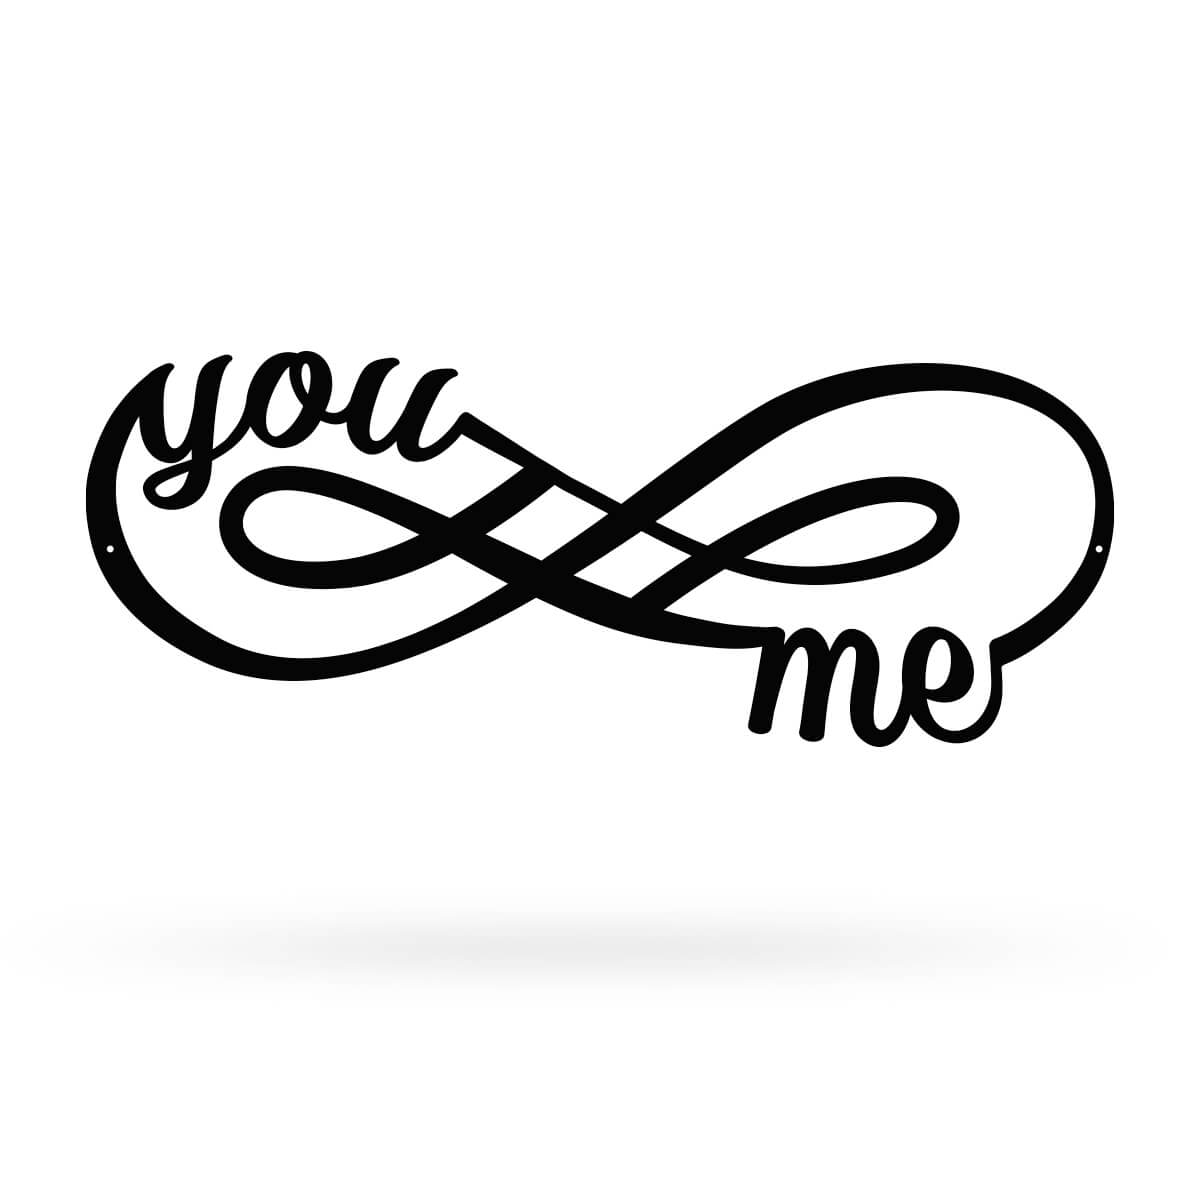 You And Me Infiniti Metal art sign BIRTHDAY ANNIVERSARY VALENTINES DAY GIFT